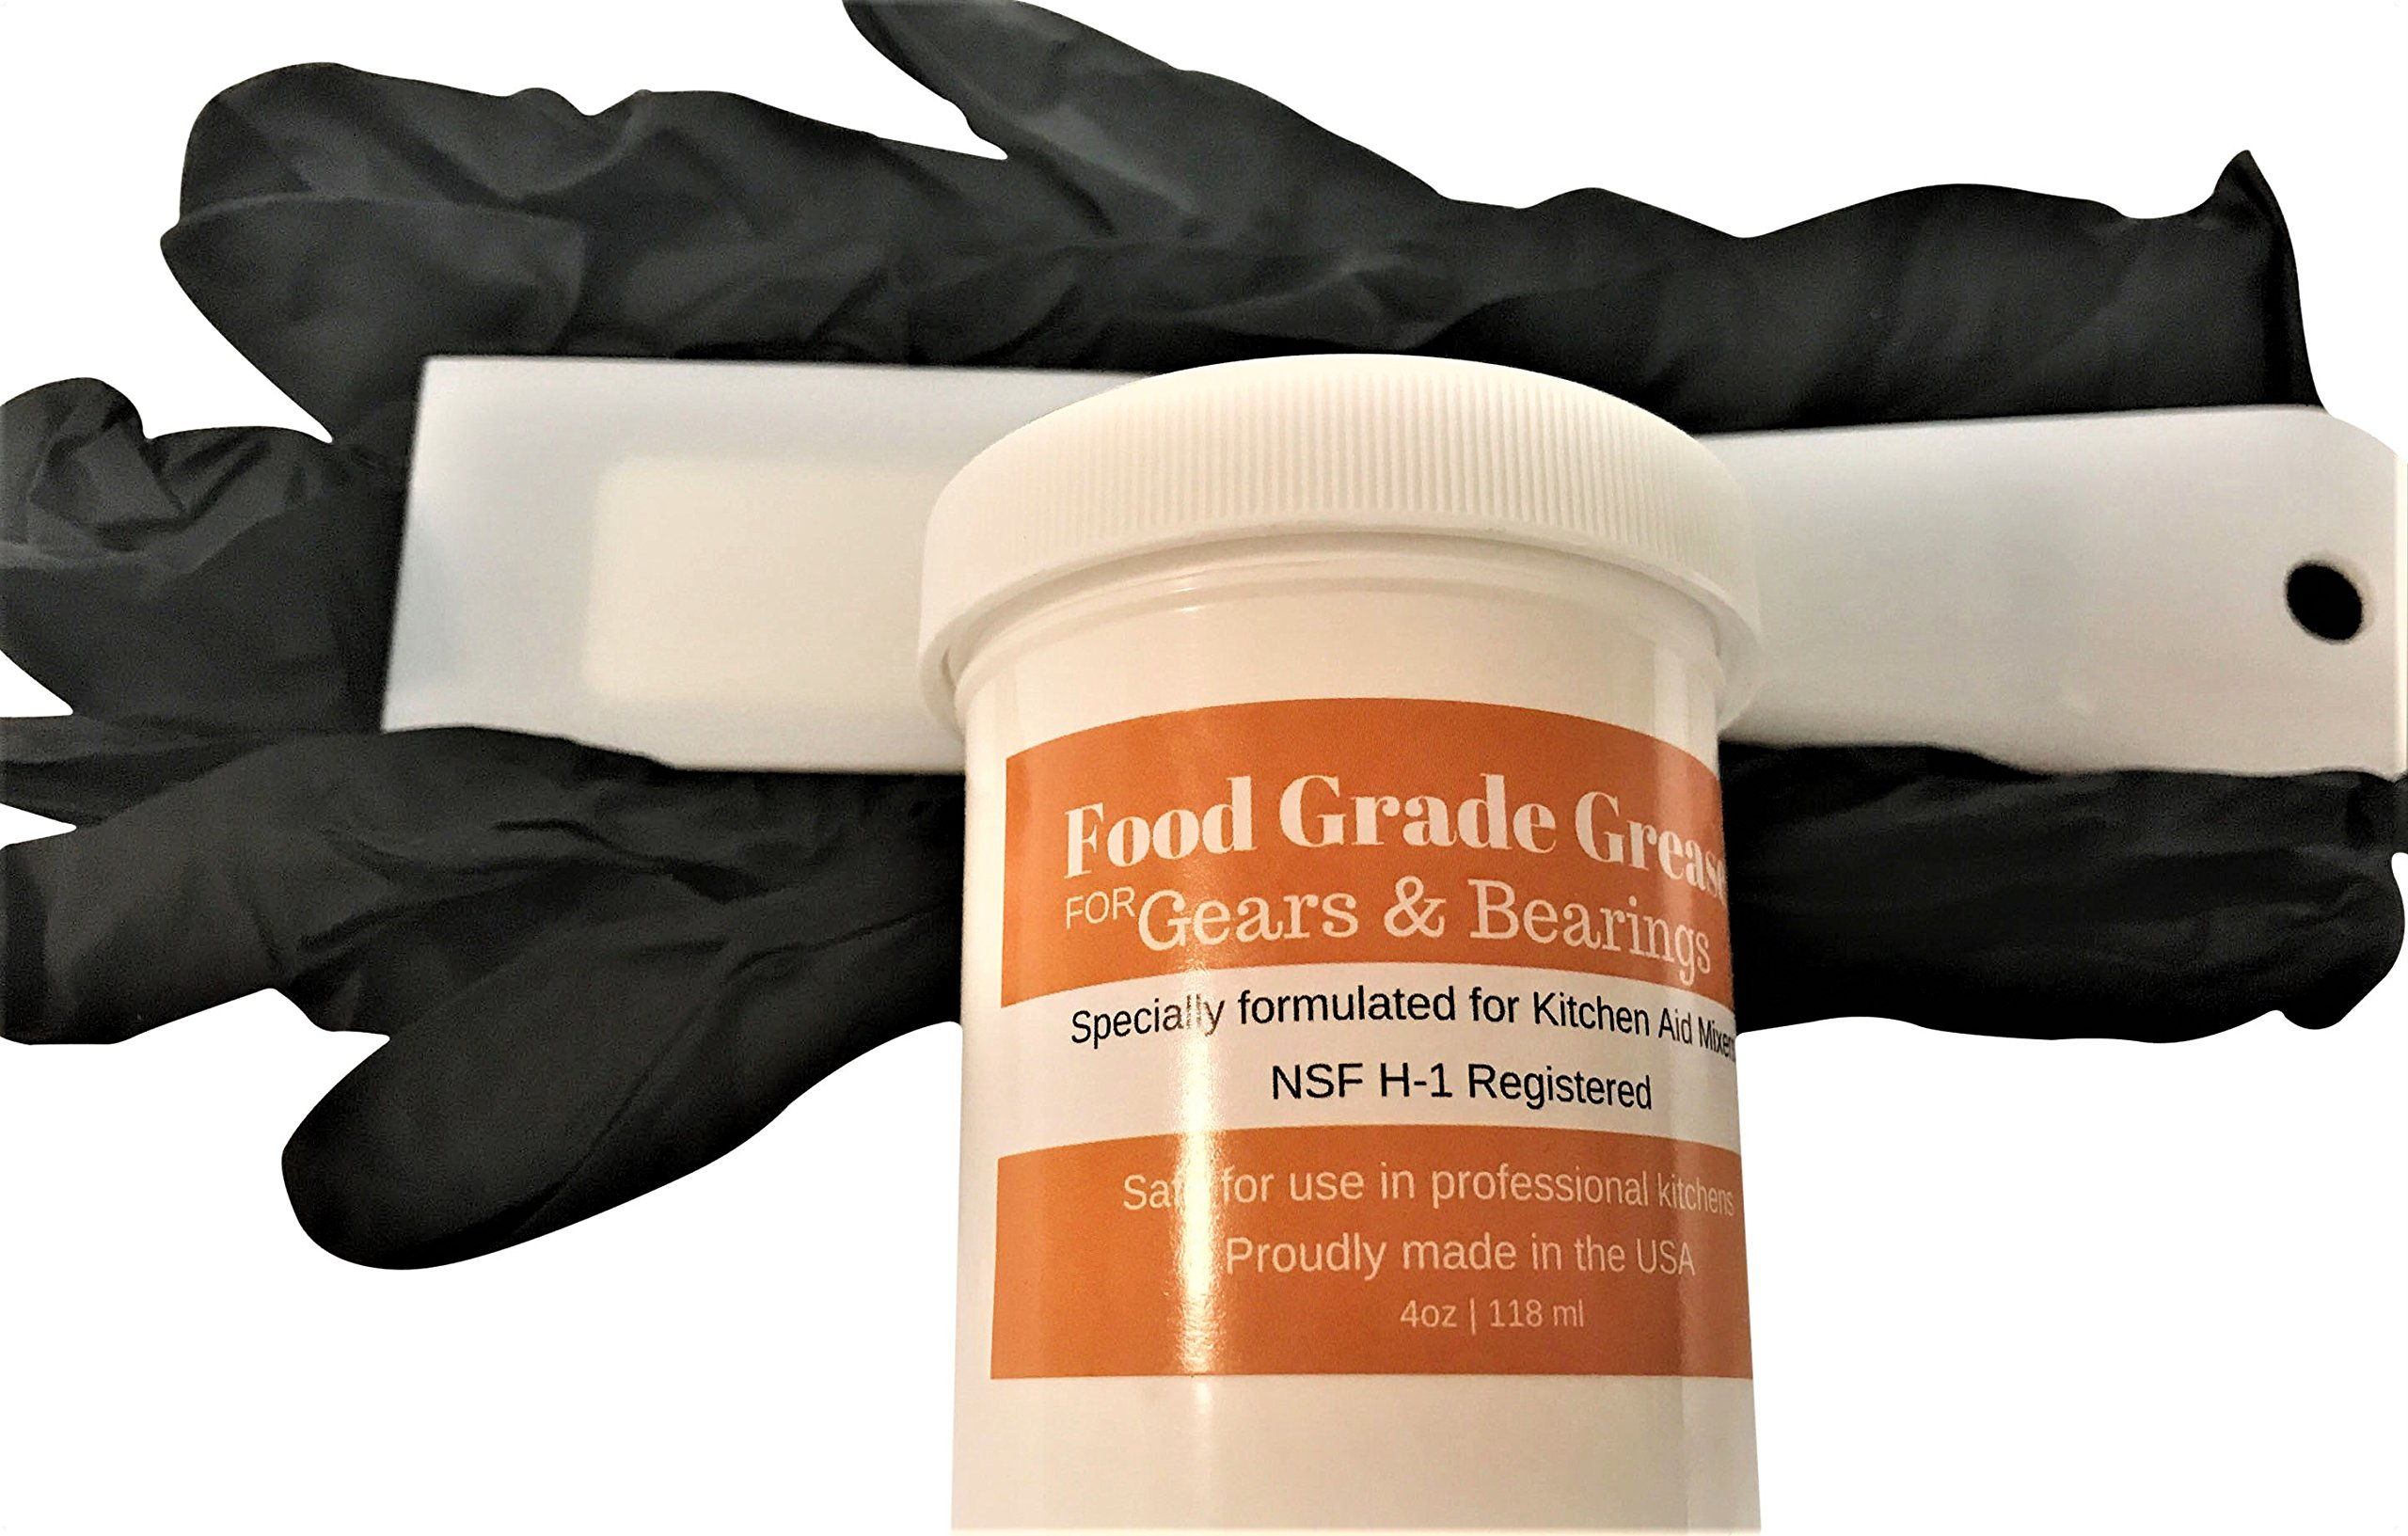 (REPAIR KIT) 4oz Food Grade Grease for KitchenAid Stand Mixer With Gloves and Putty Knife - MADE IN THE USA